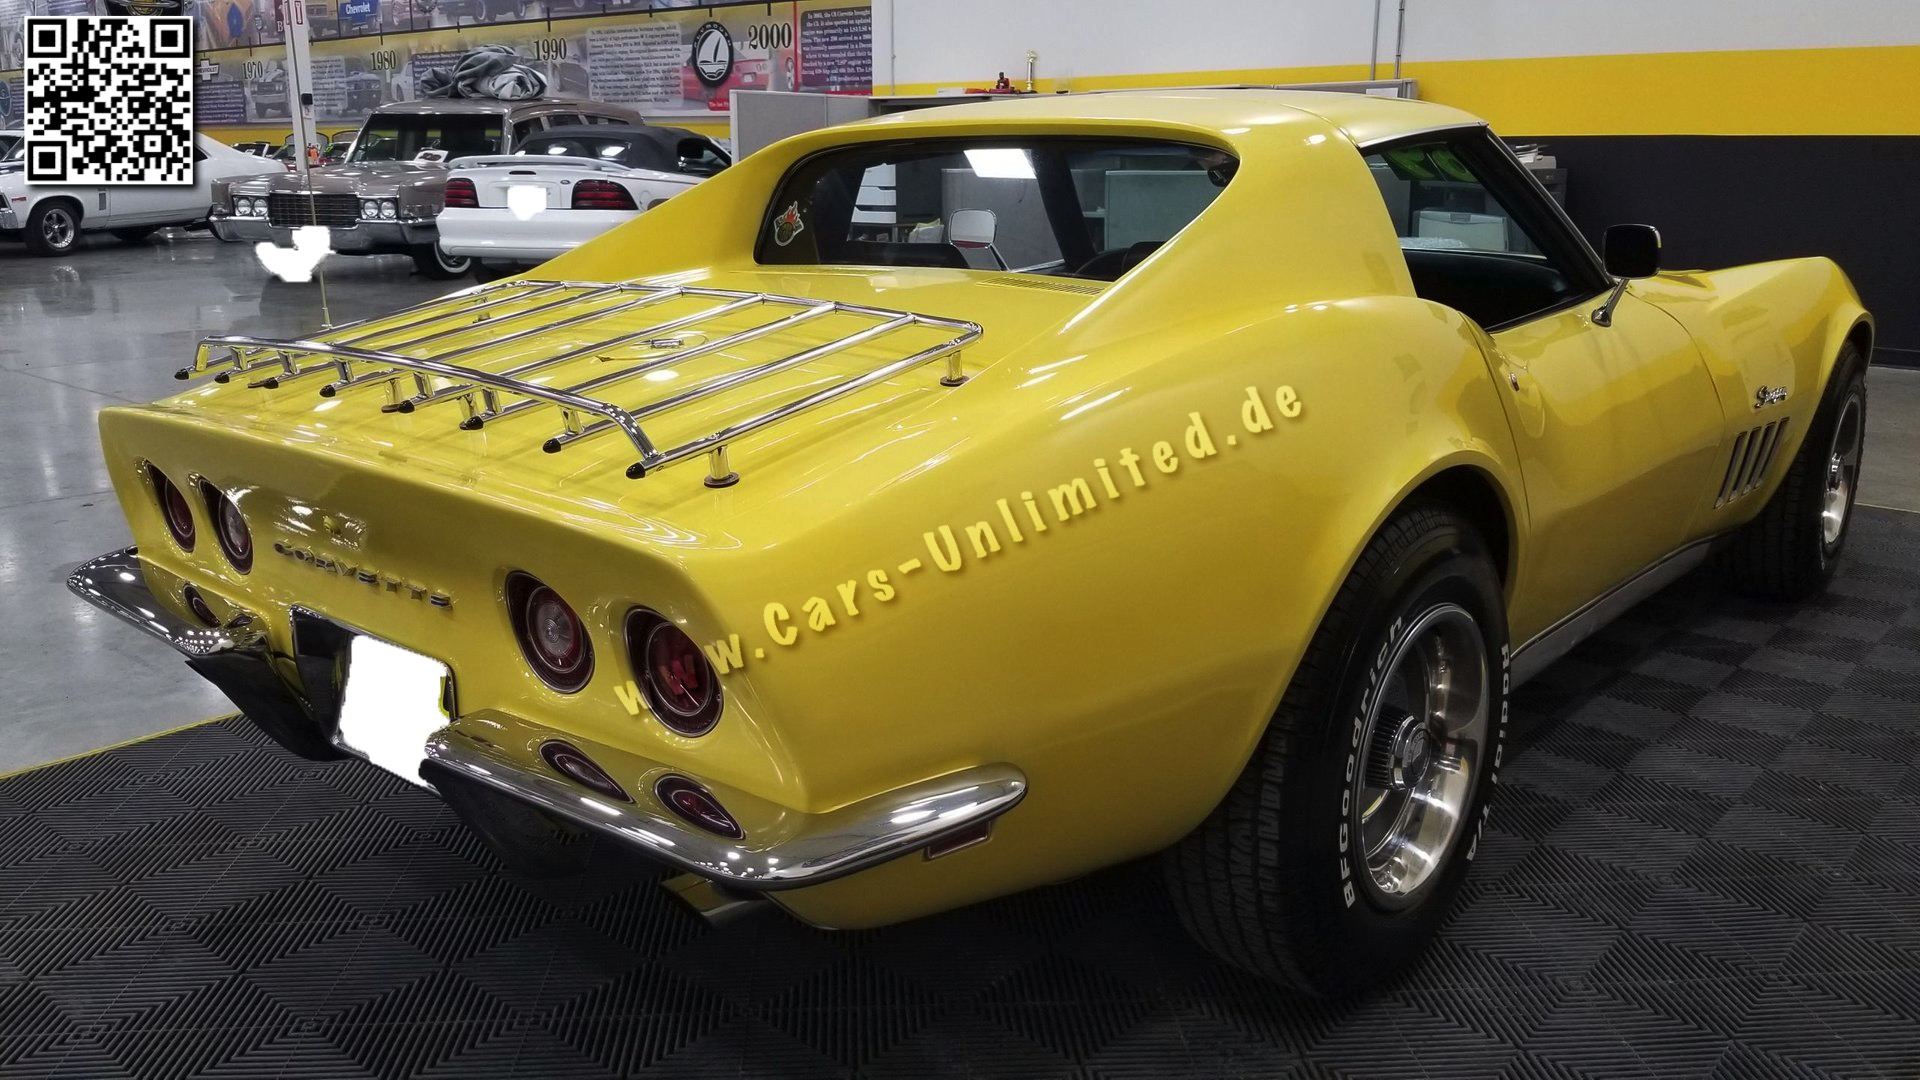 Cars-Unlimited – South Germany